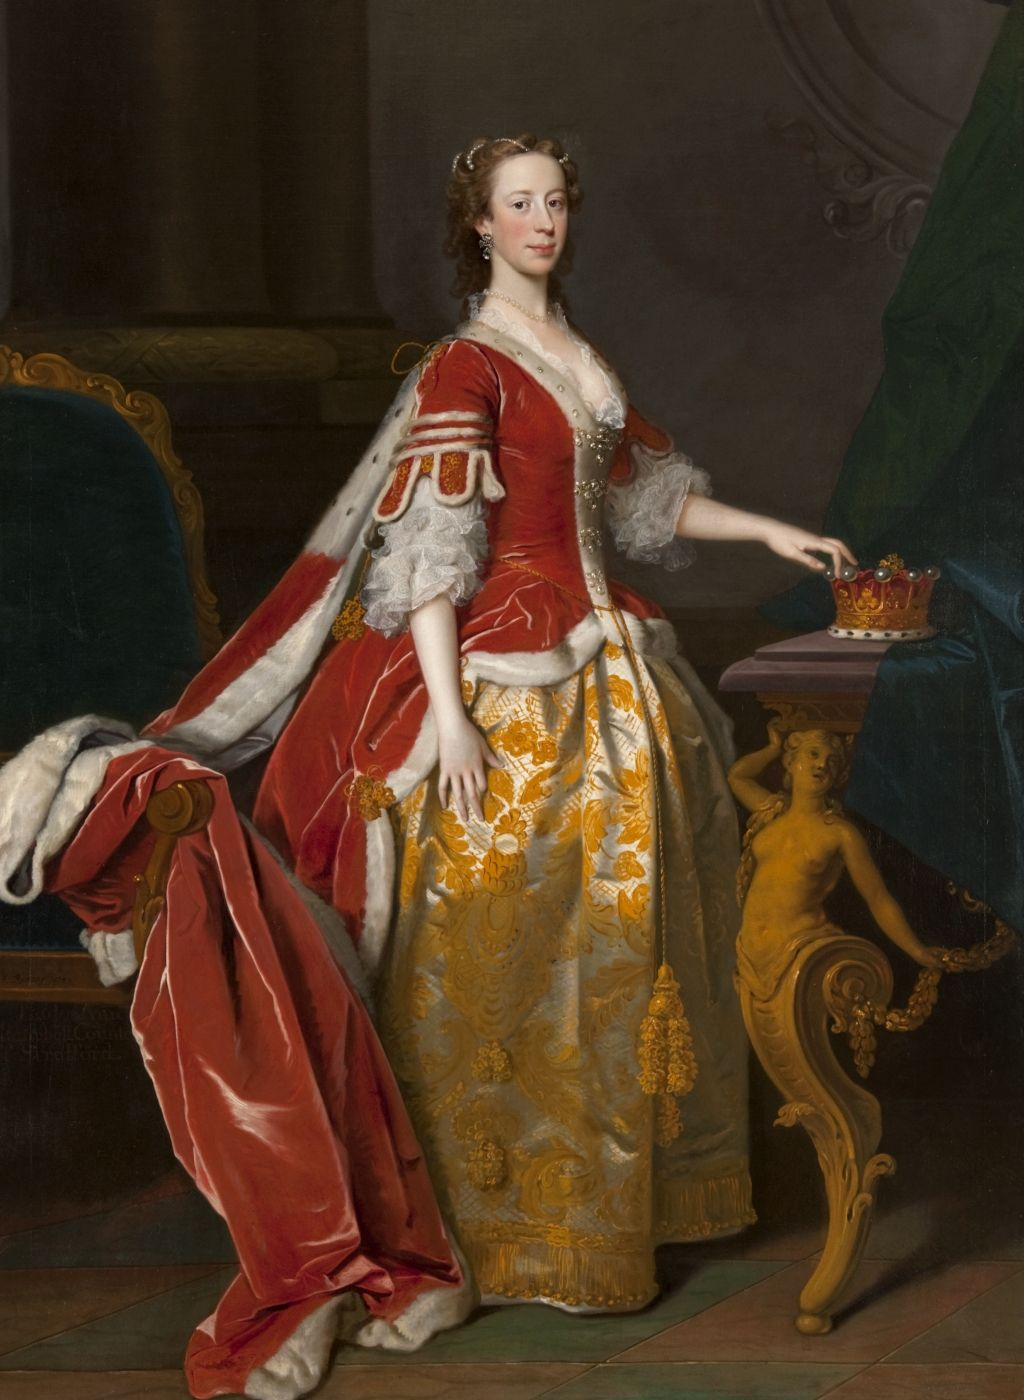 """Lady Anne Campbell, Countess of Strafford (c.1720-1785)"" 1743    Hunterian Art Gallery collections, catalogue number GLAHA 44023. Another example of court dress, although 50 years later. Also a countess, not a duchess."